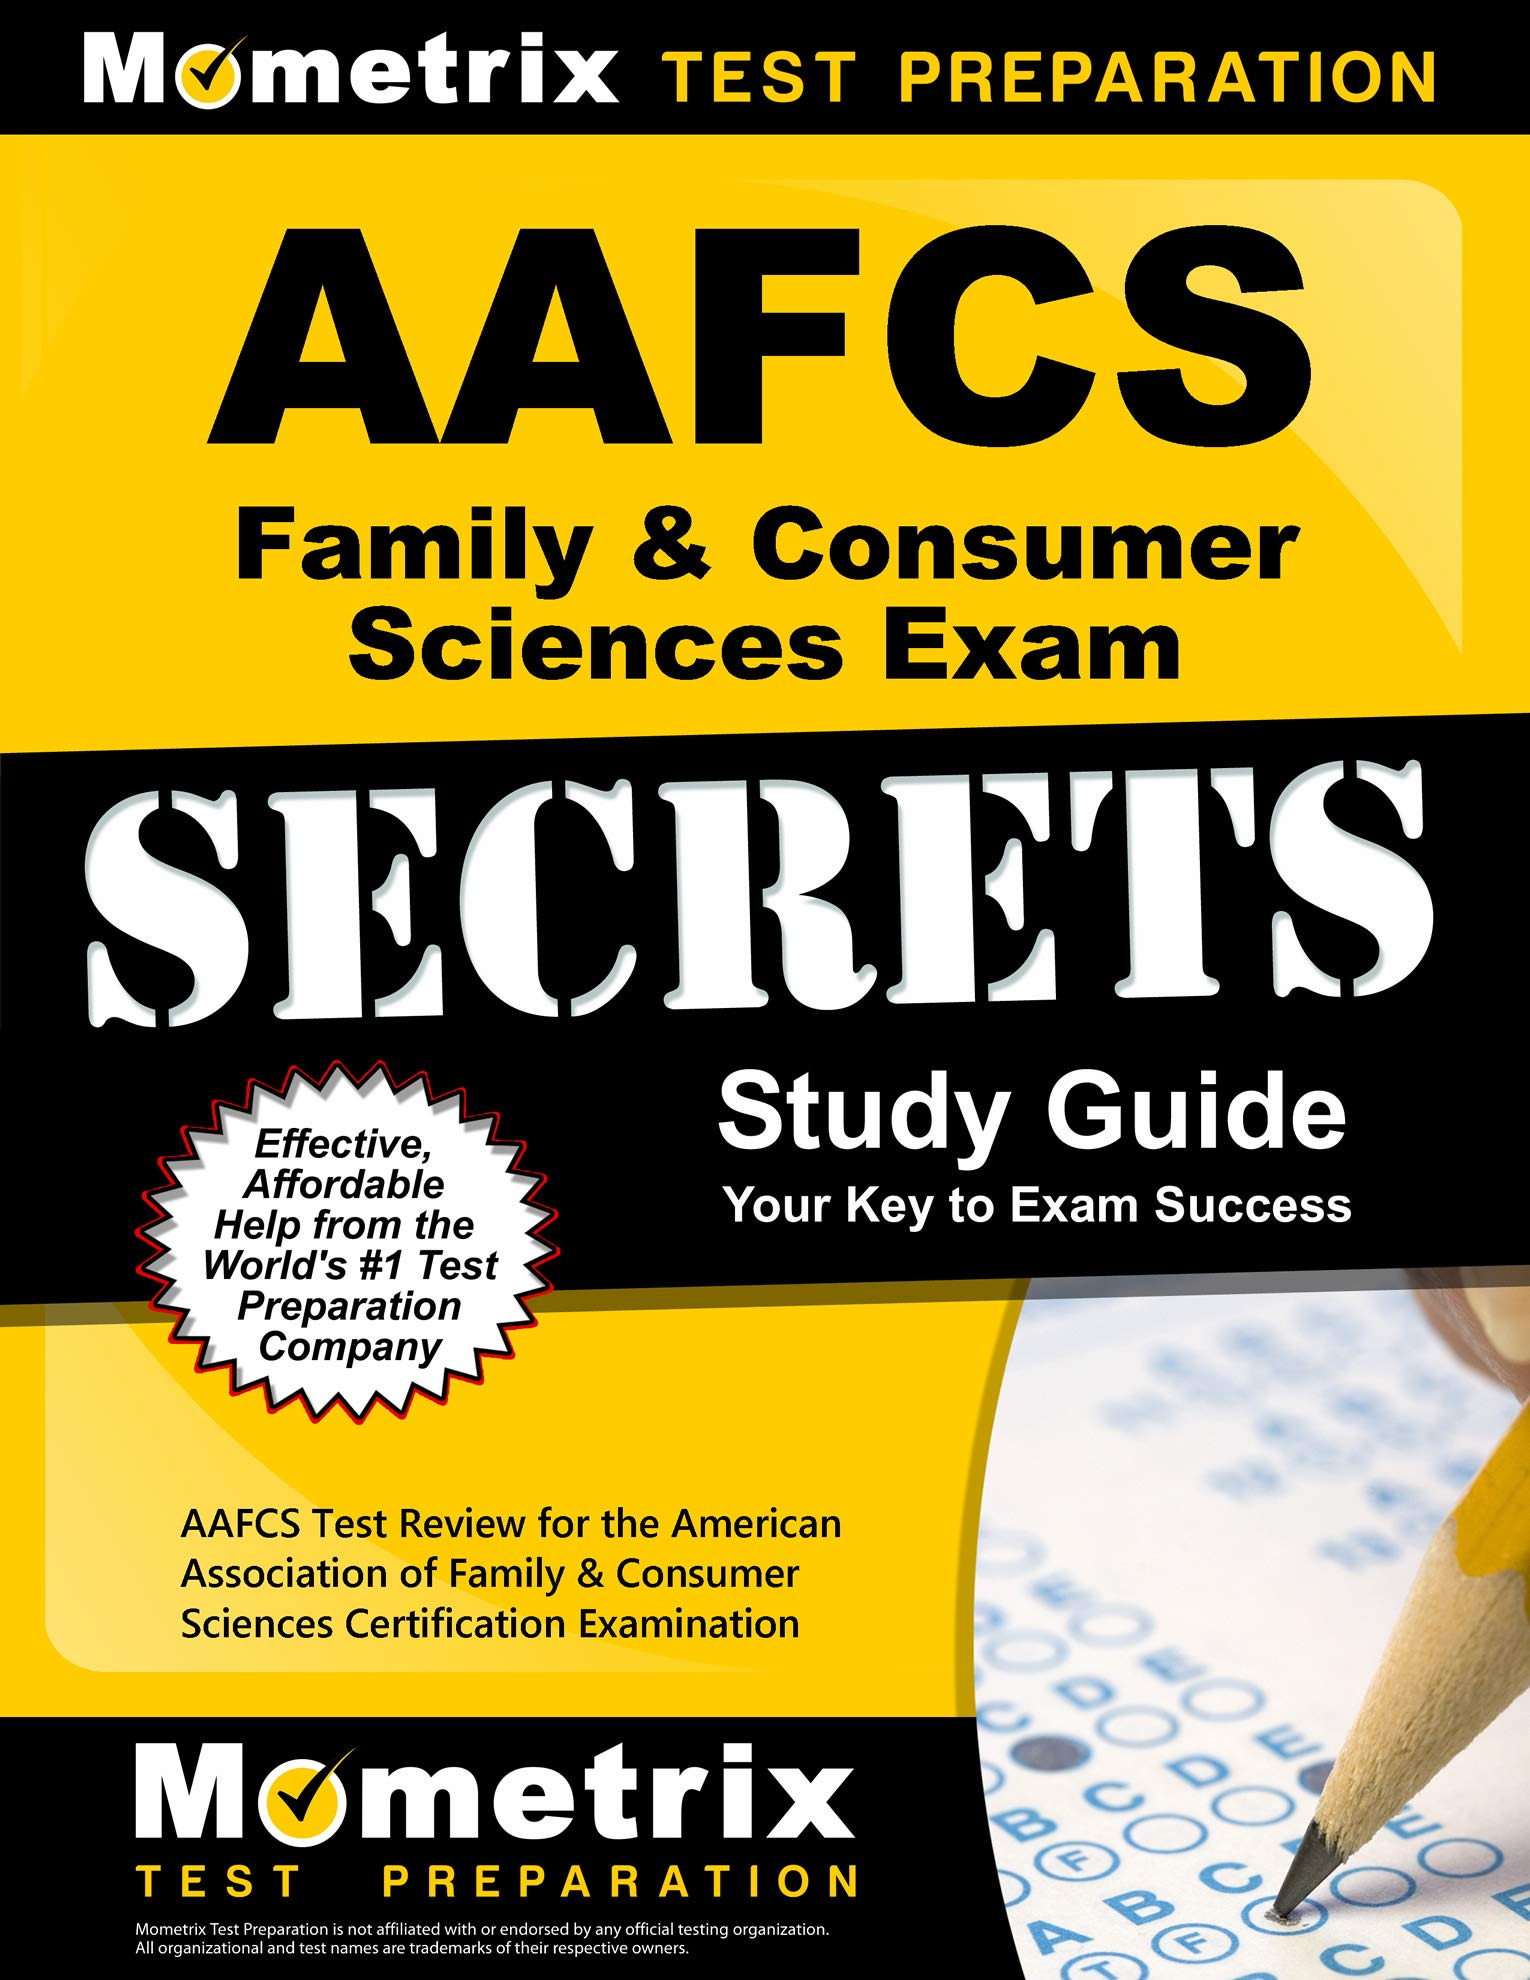 AAFCS Family & Consumer Sciences Exam Secrets Study Guide: AAFCS Test Review for the American Association of Family & Consumer Sciences Certification Examination by Mometrix Media LLC